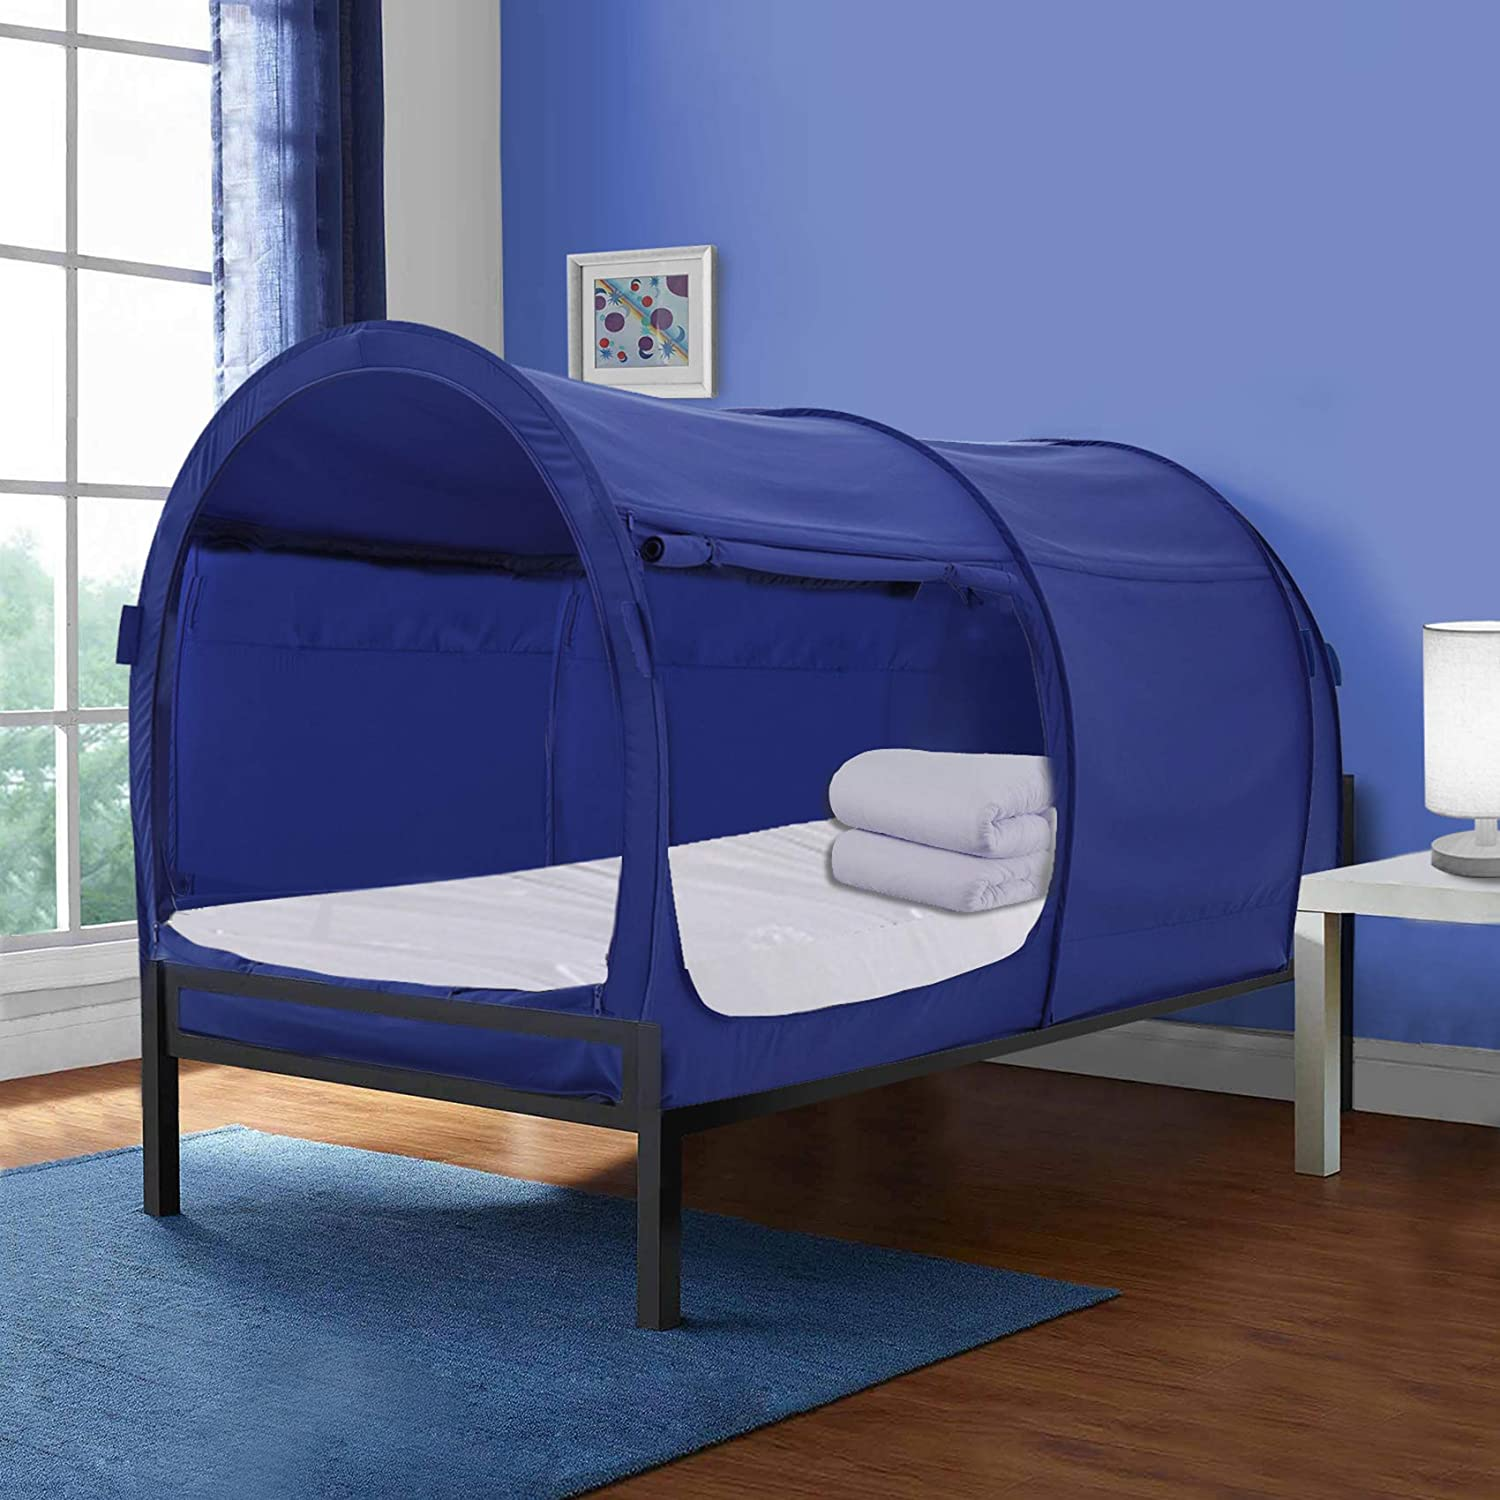 Alvantor Bed Canopy Tents Dream Privacy Space Twin Size Sleeping Tents Indoor Pop Up Portable Frame Curtains Breathable Navy Cottage (Mattress Not Included) Reducing Light: Home & Kitchen